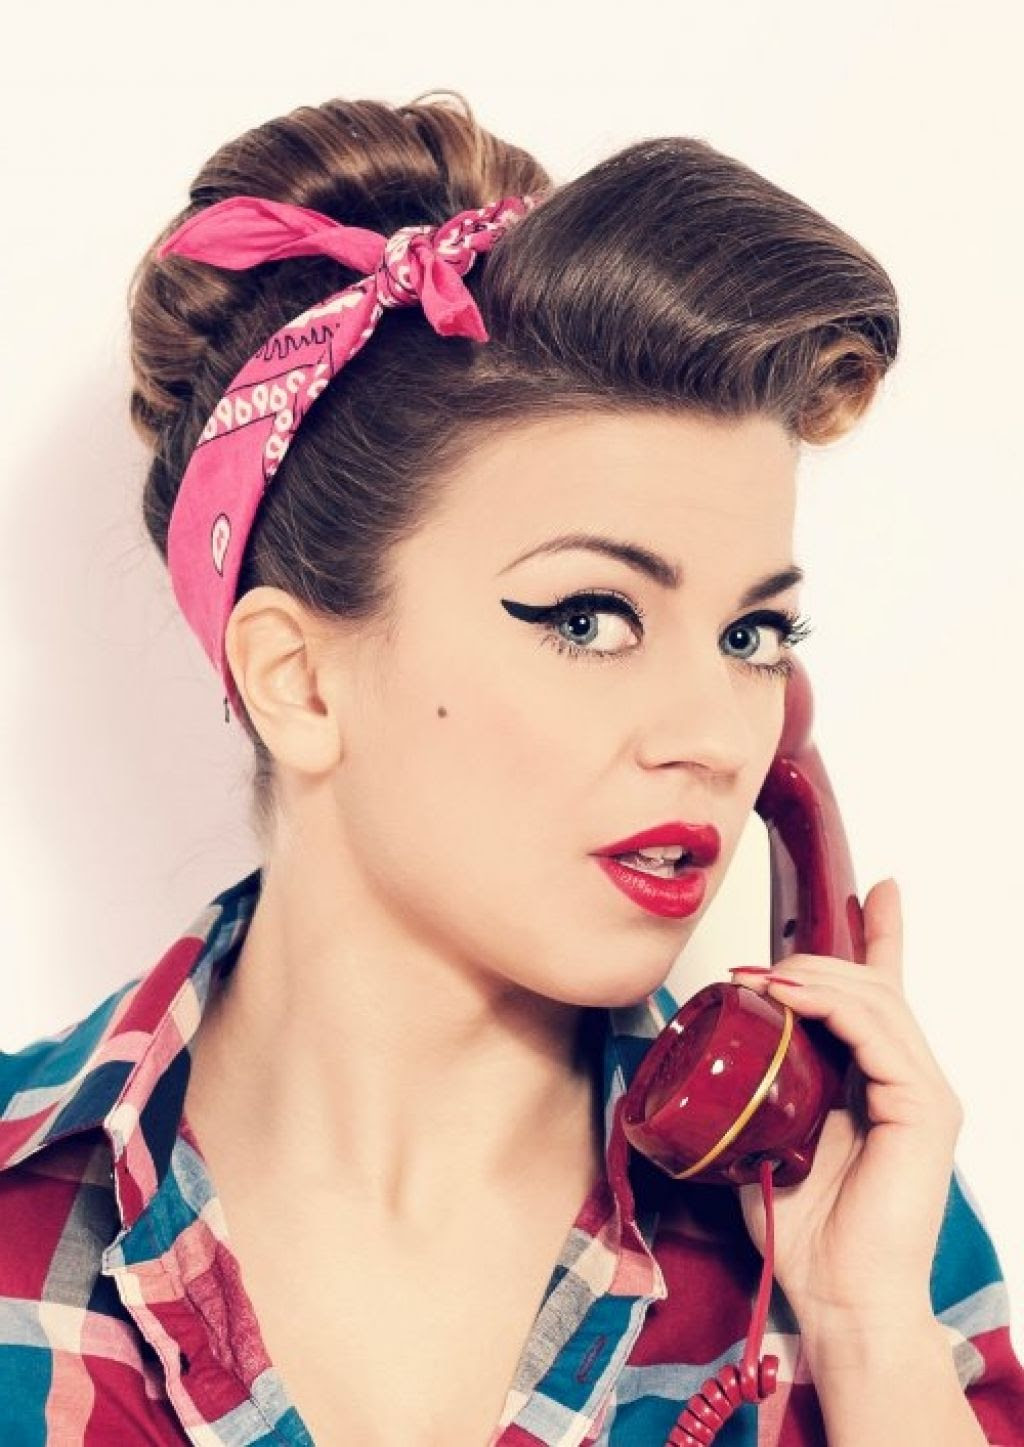 50s Hairstyles Ideas To Look Classically Beautiful - The ...